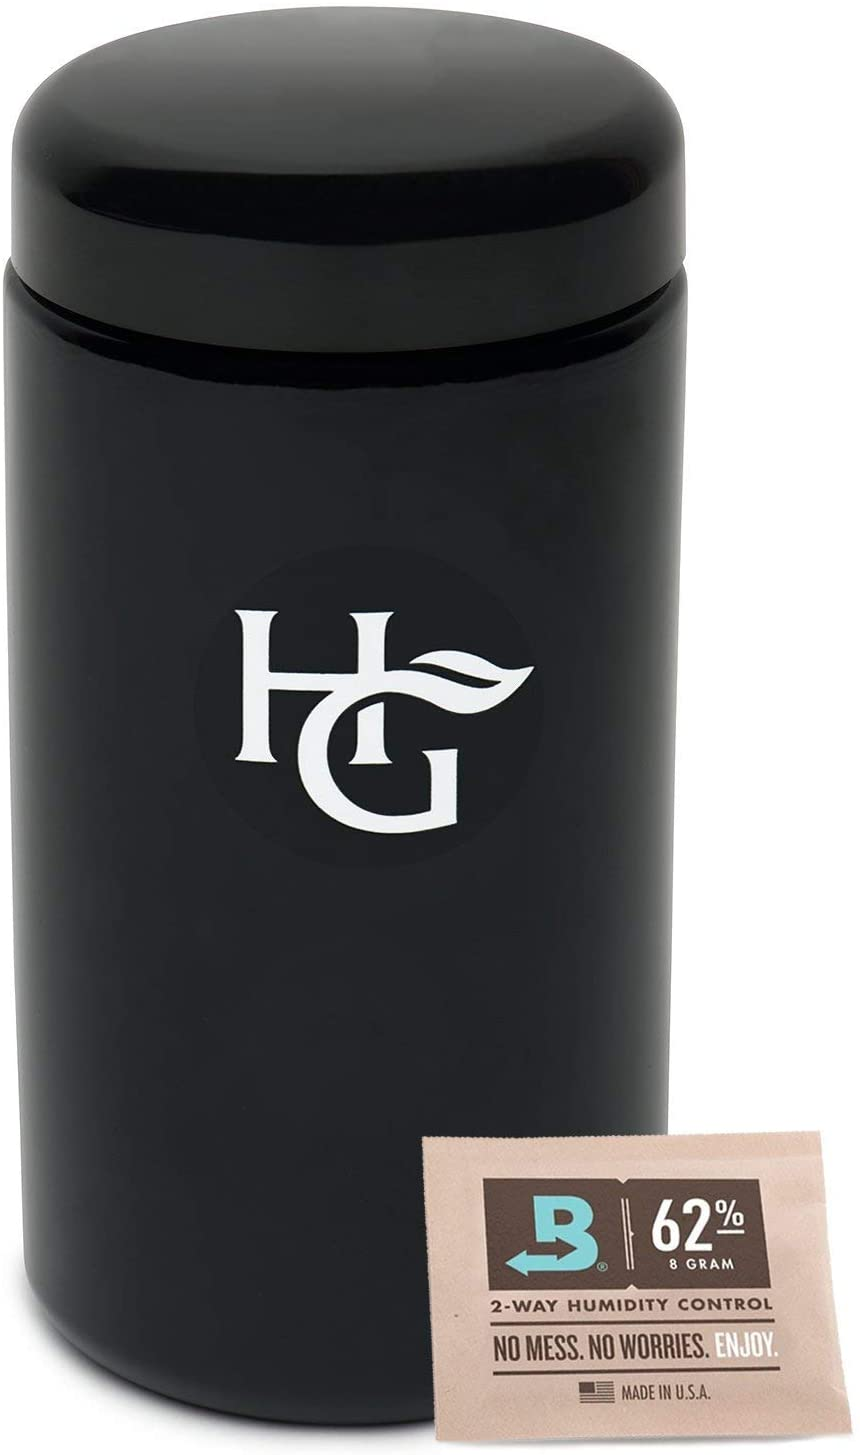 Herb Guard - Stash Jar and Smell Proof Container